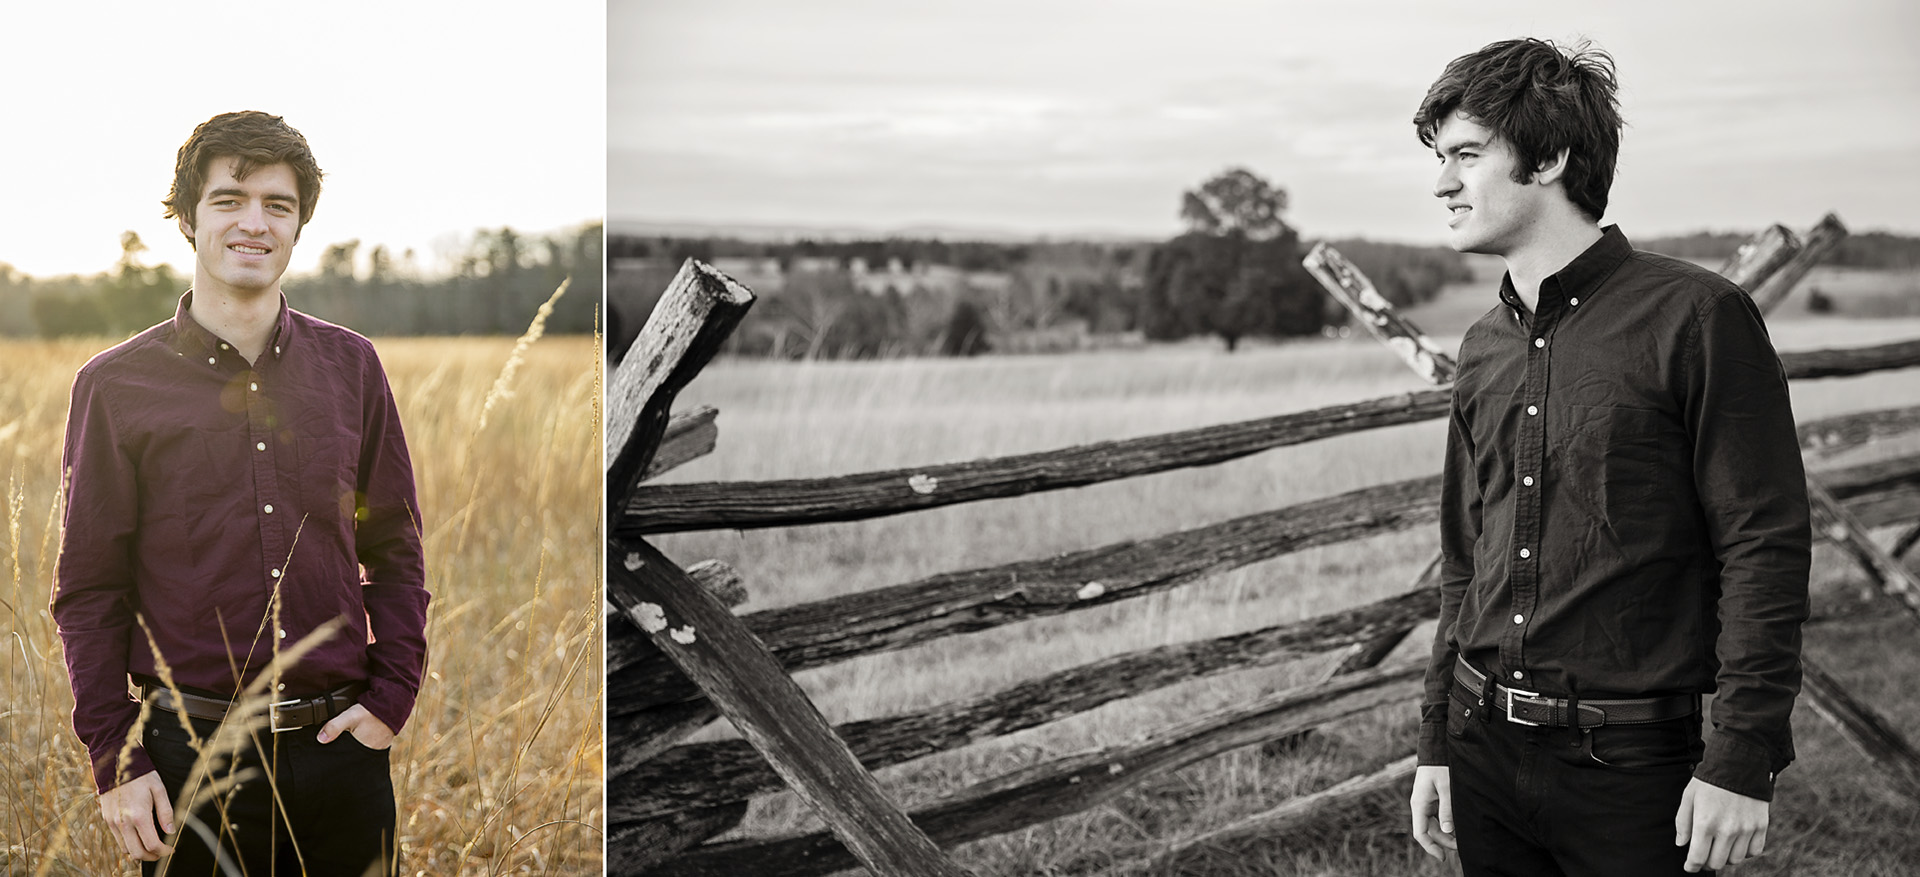 Senior boy portrait, Manassas Battlefield, VA